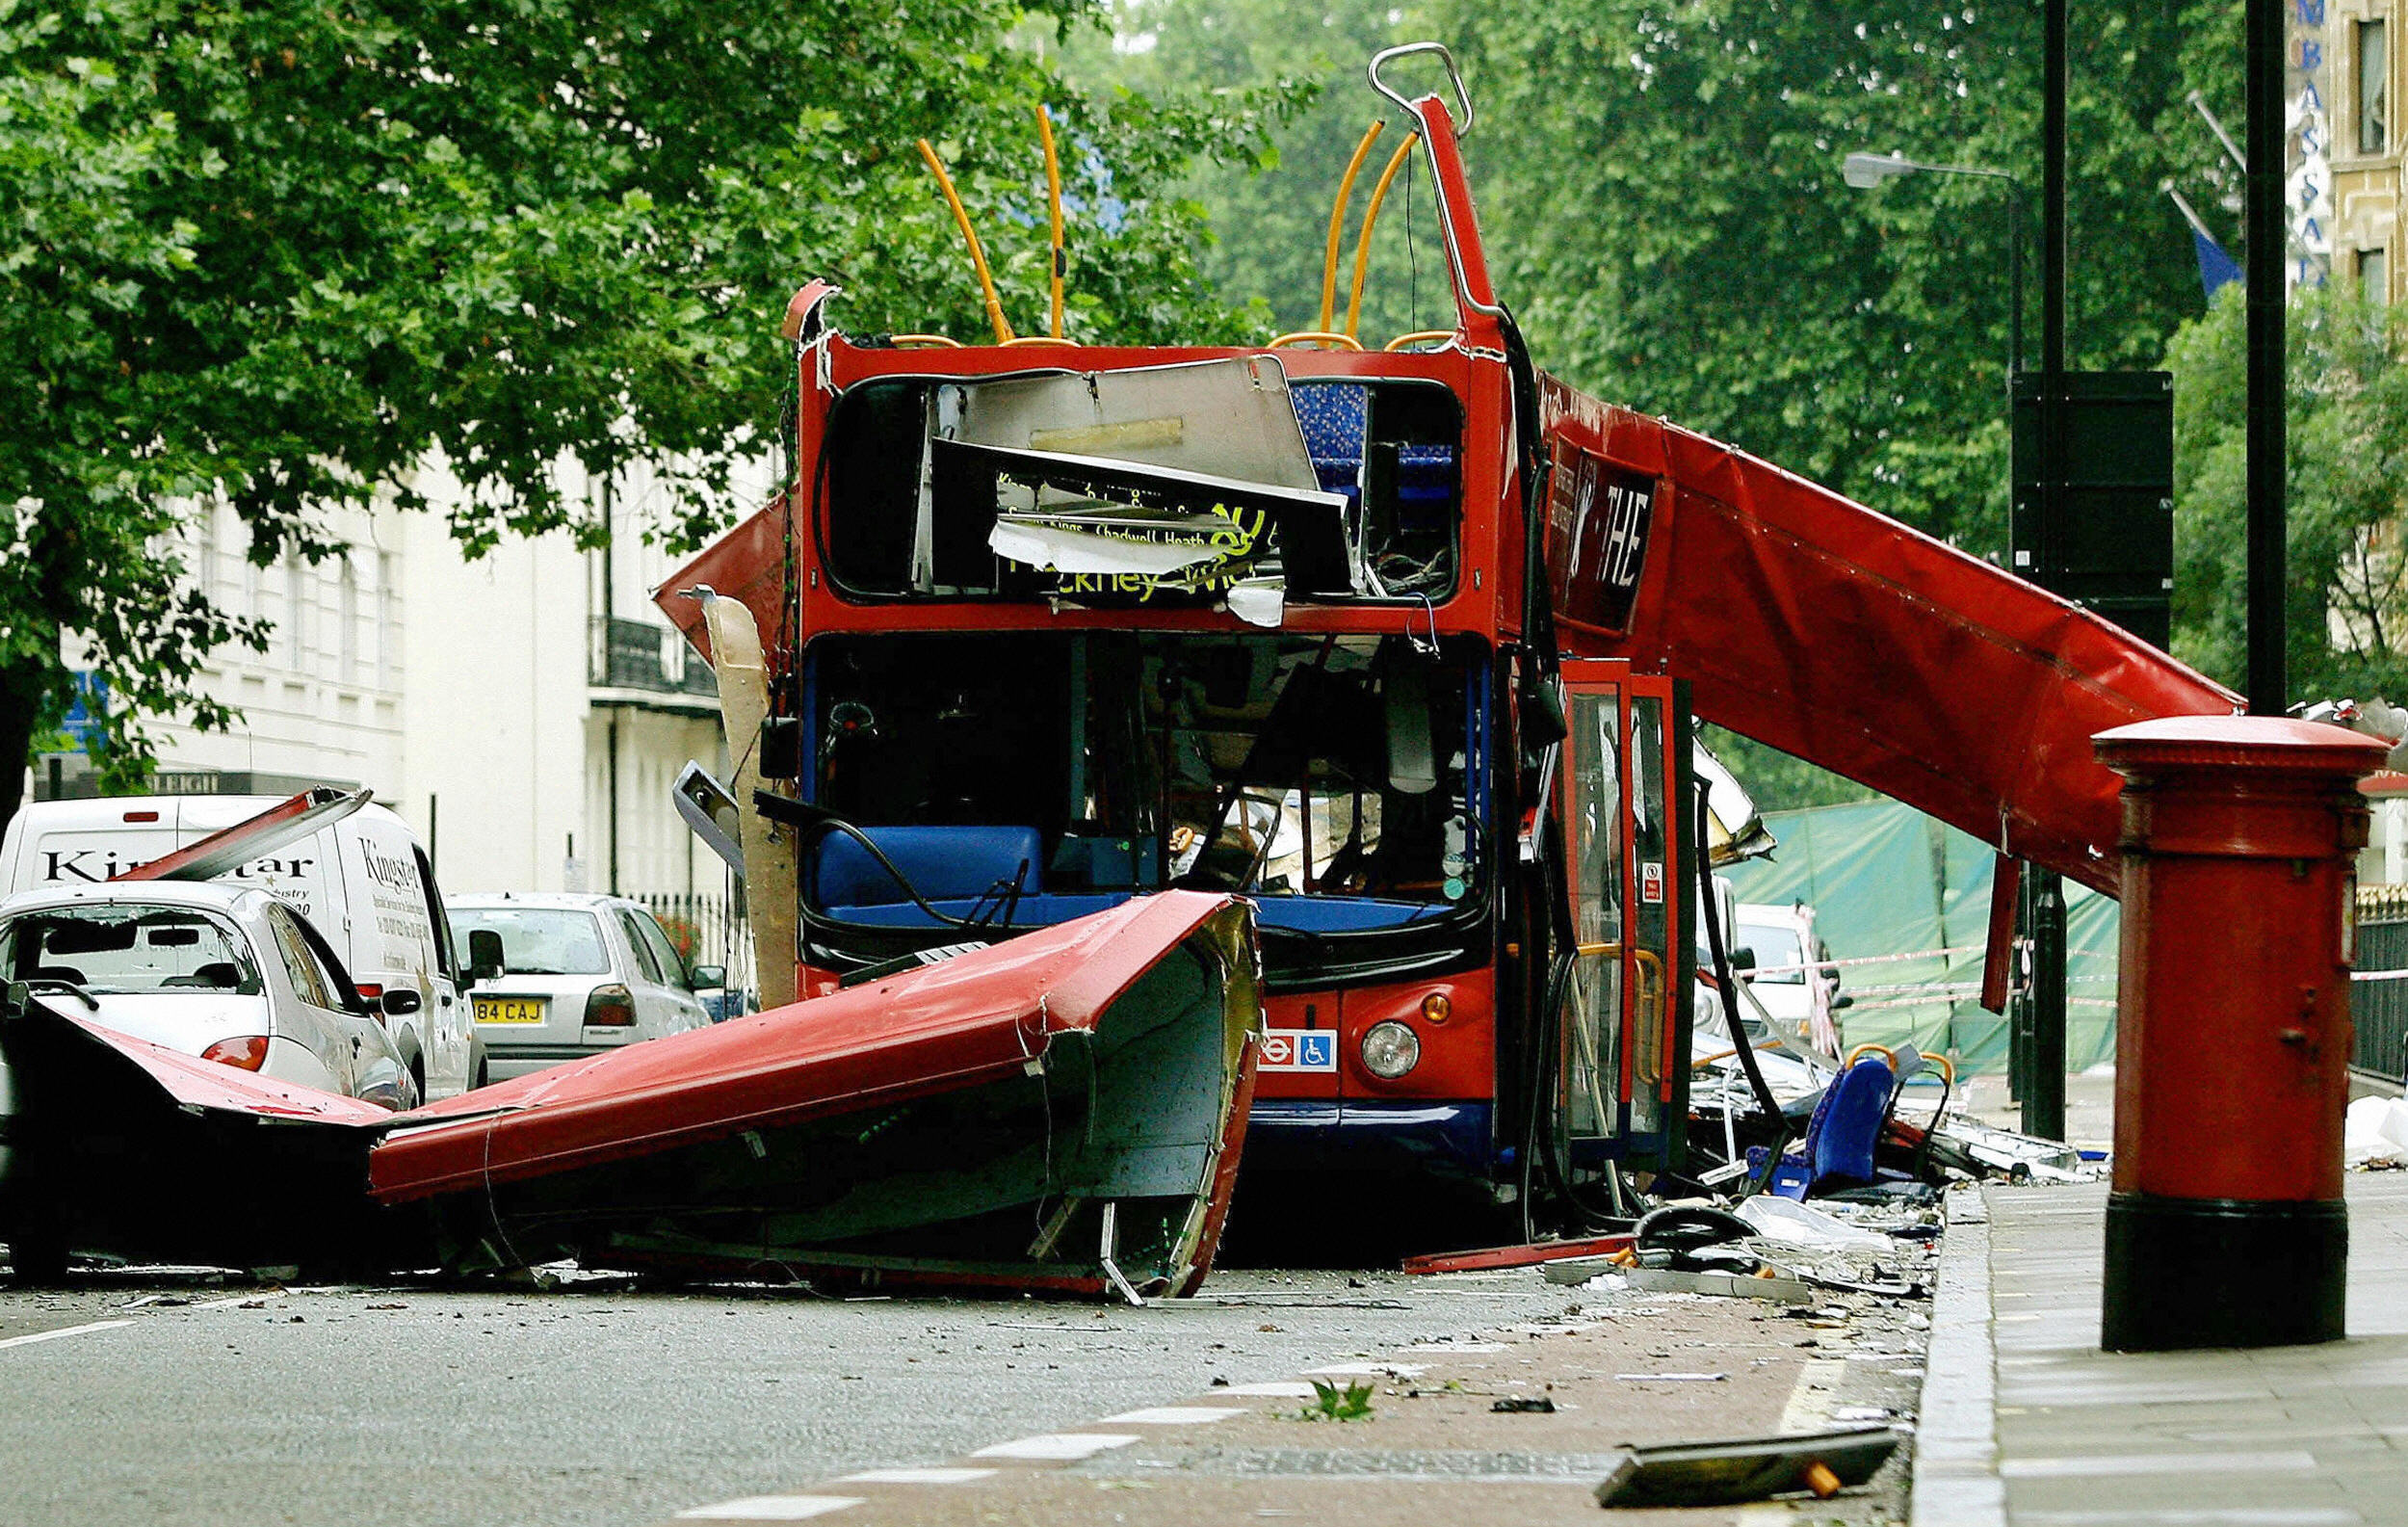 bus bombed in London 7/7